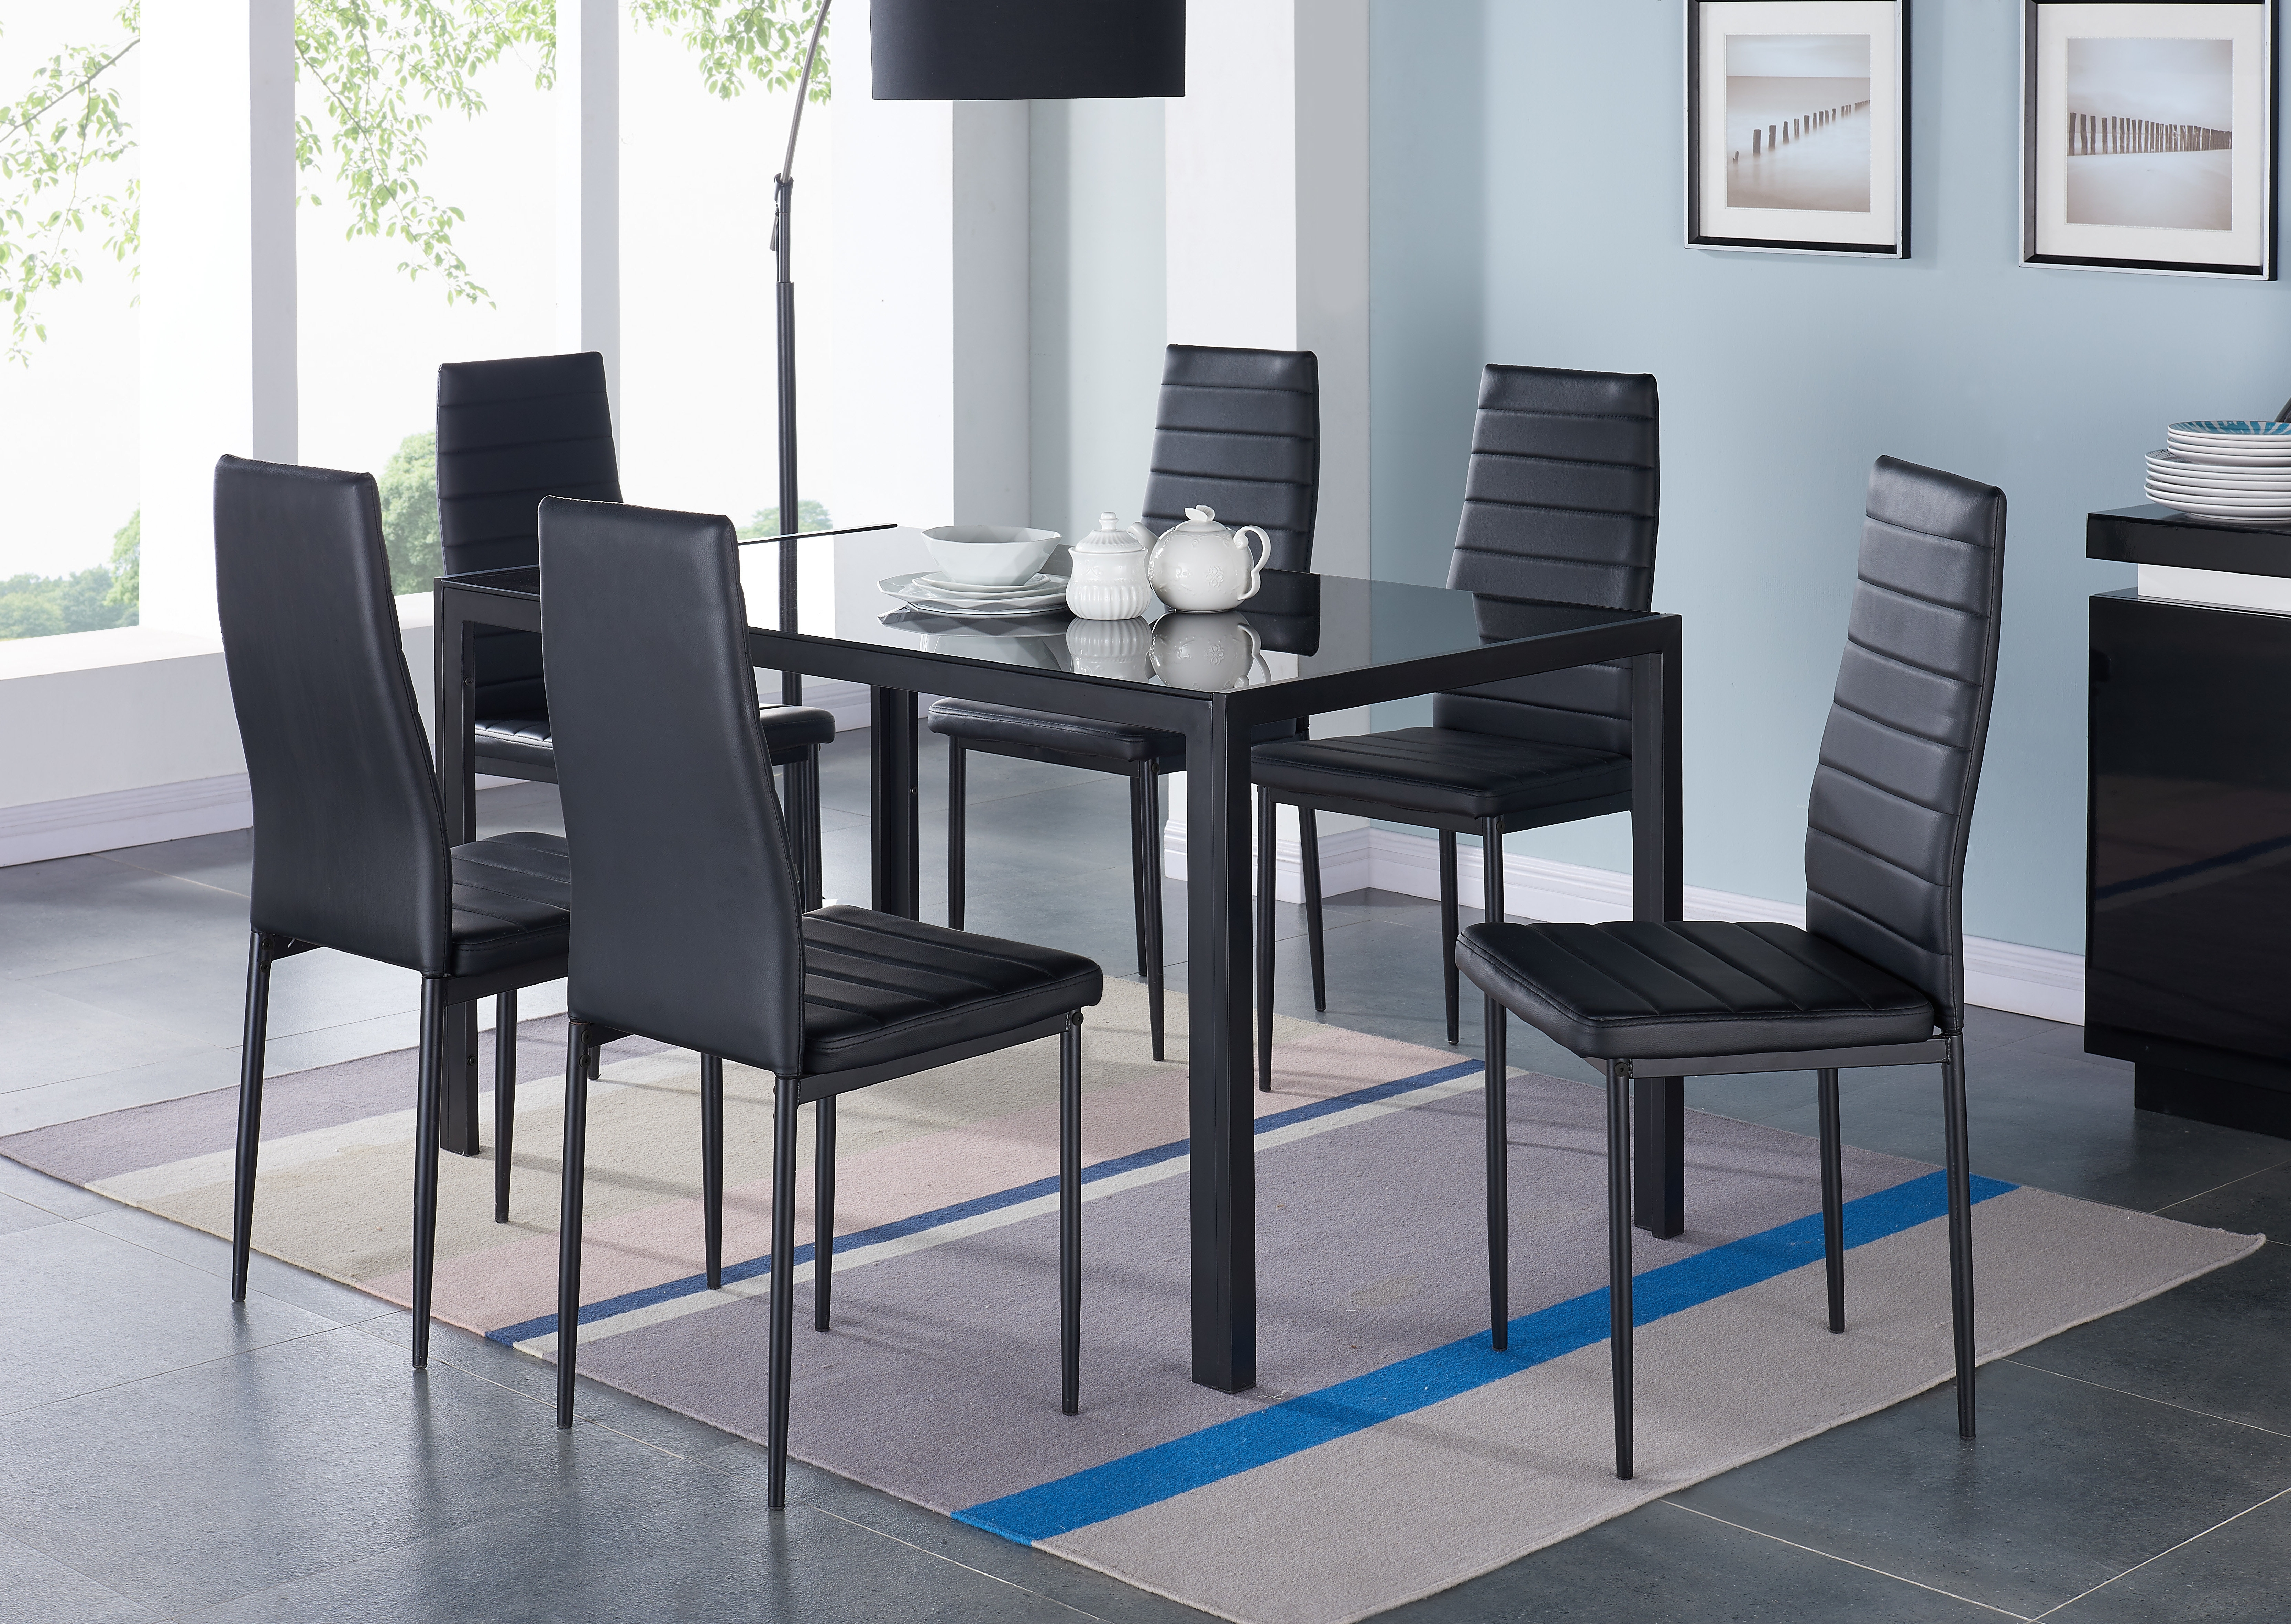 Black Glass Dining Tables 6 Chairs Pertaining To Well Known Orren Ellis Umber Glass Dining Table Set With 6 Chairs (View 19 of 25)